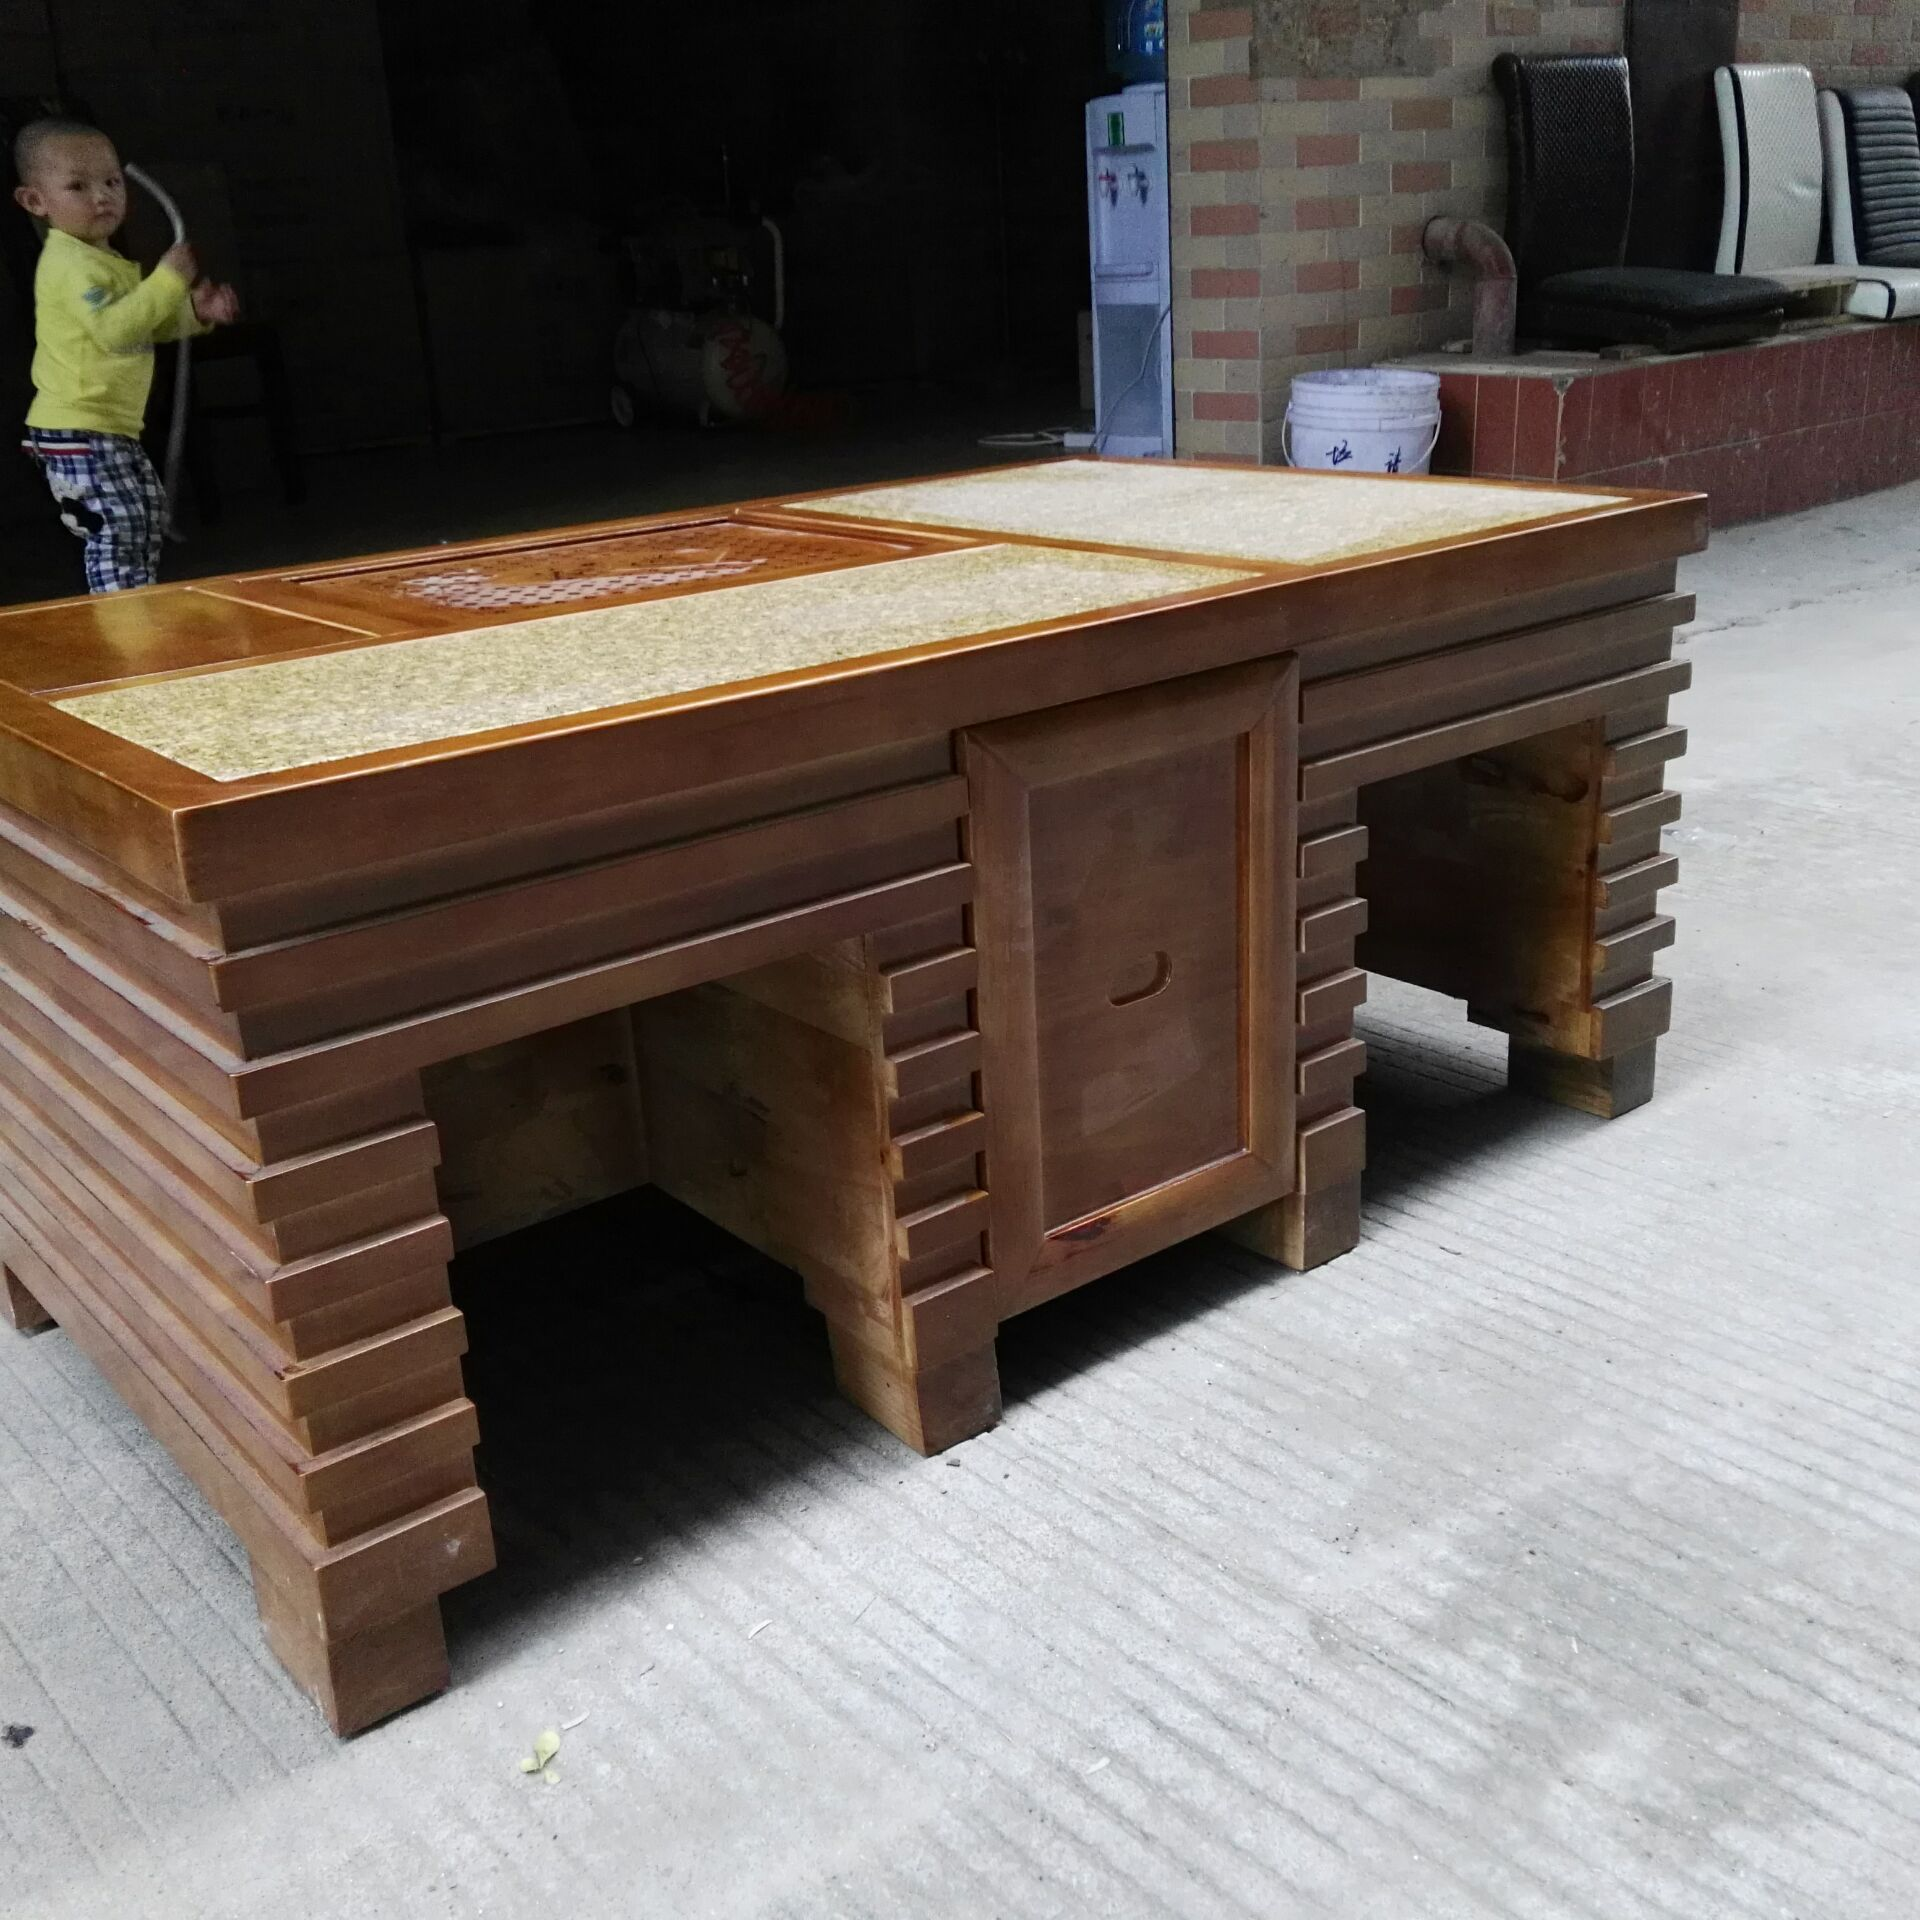 Online Buy Wholesale Stone Coffee Table From China Stone Coffee Table Wholesalers